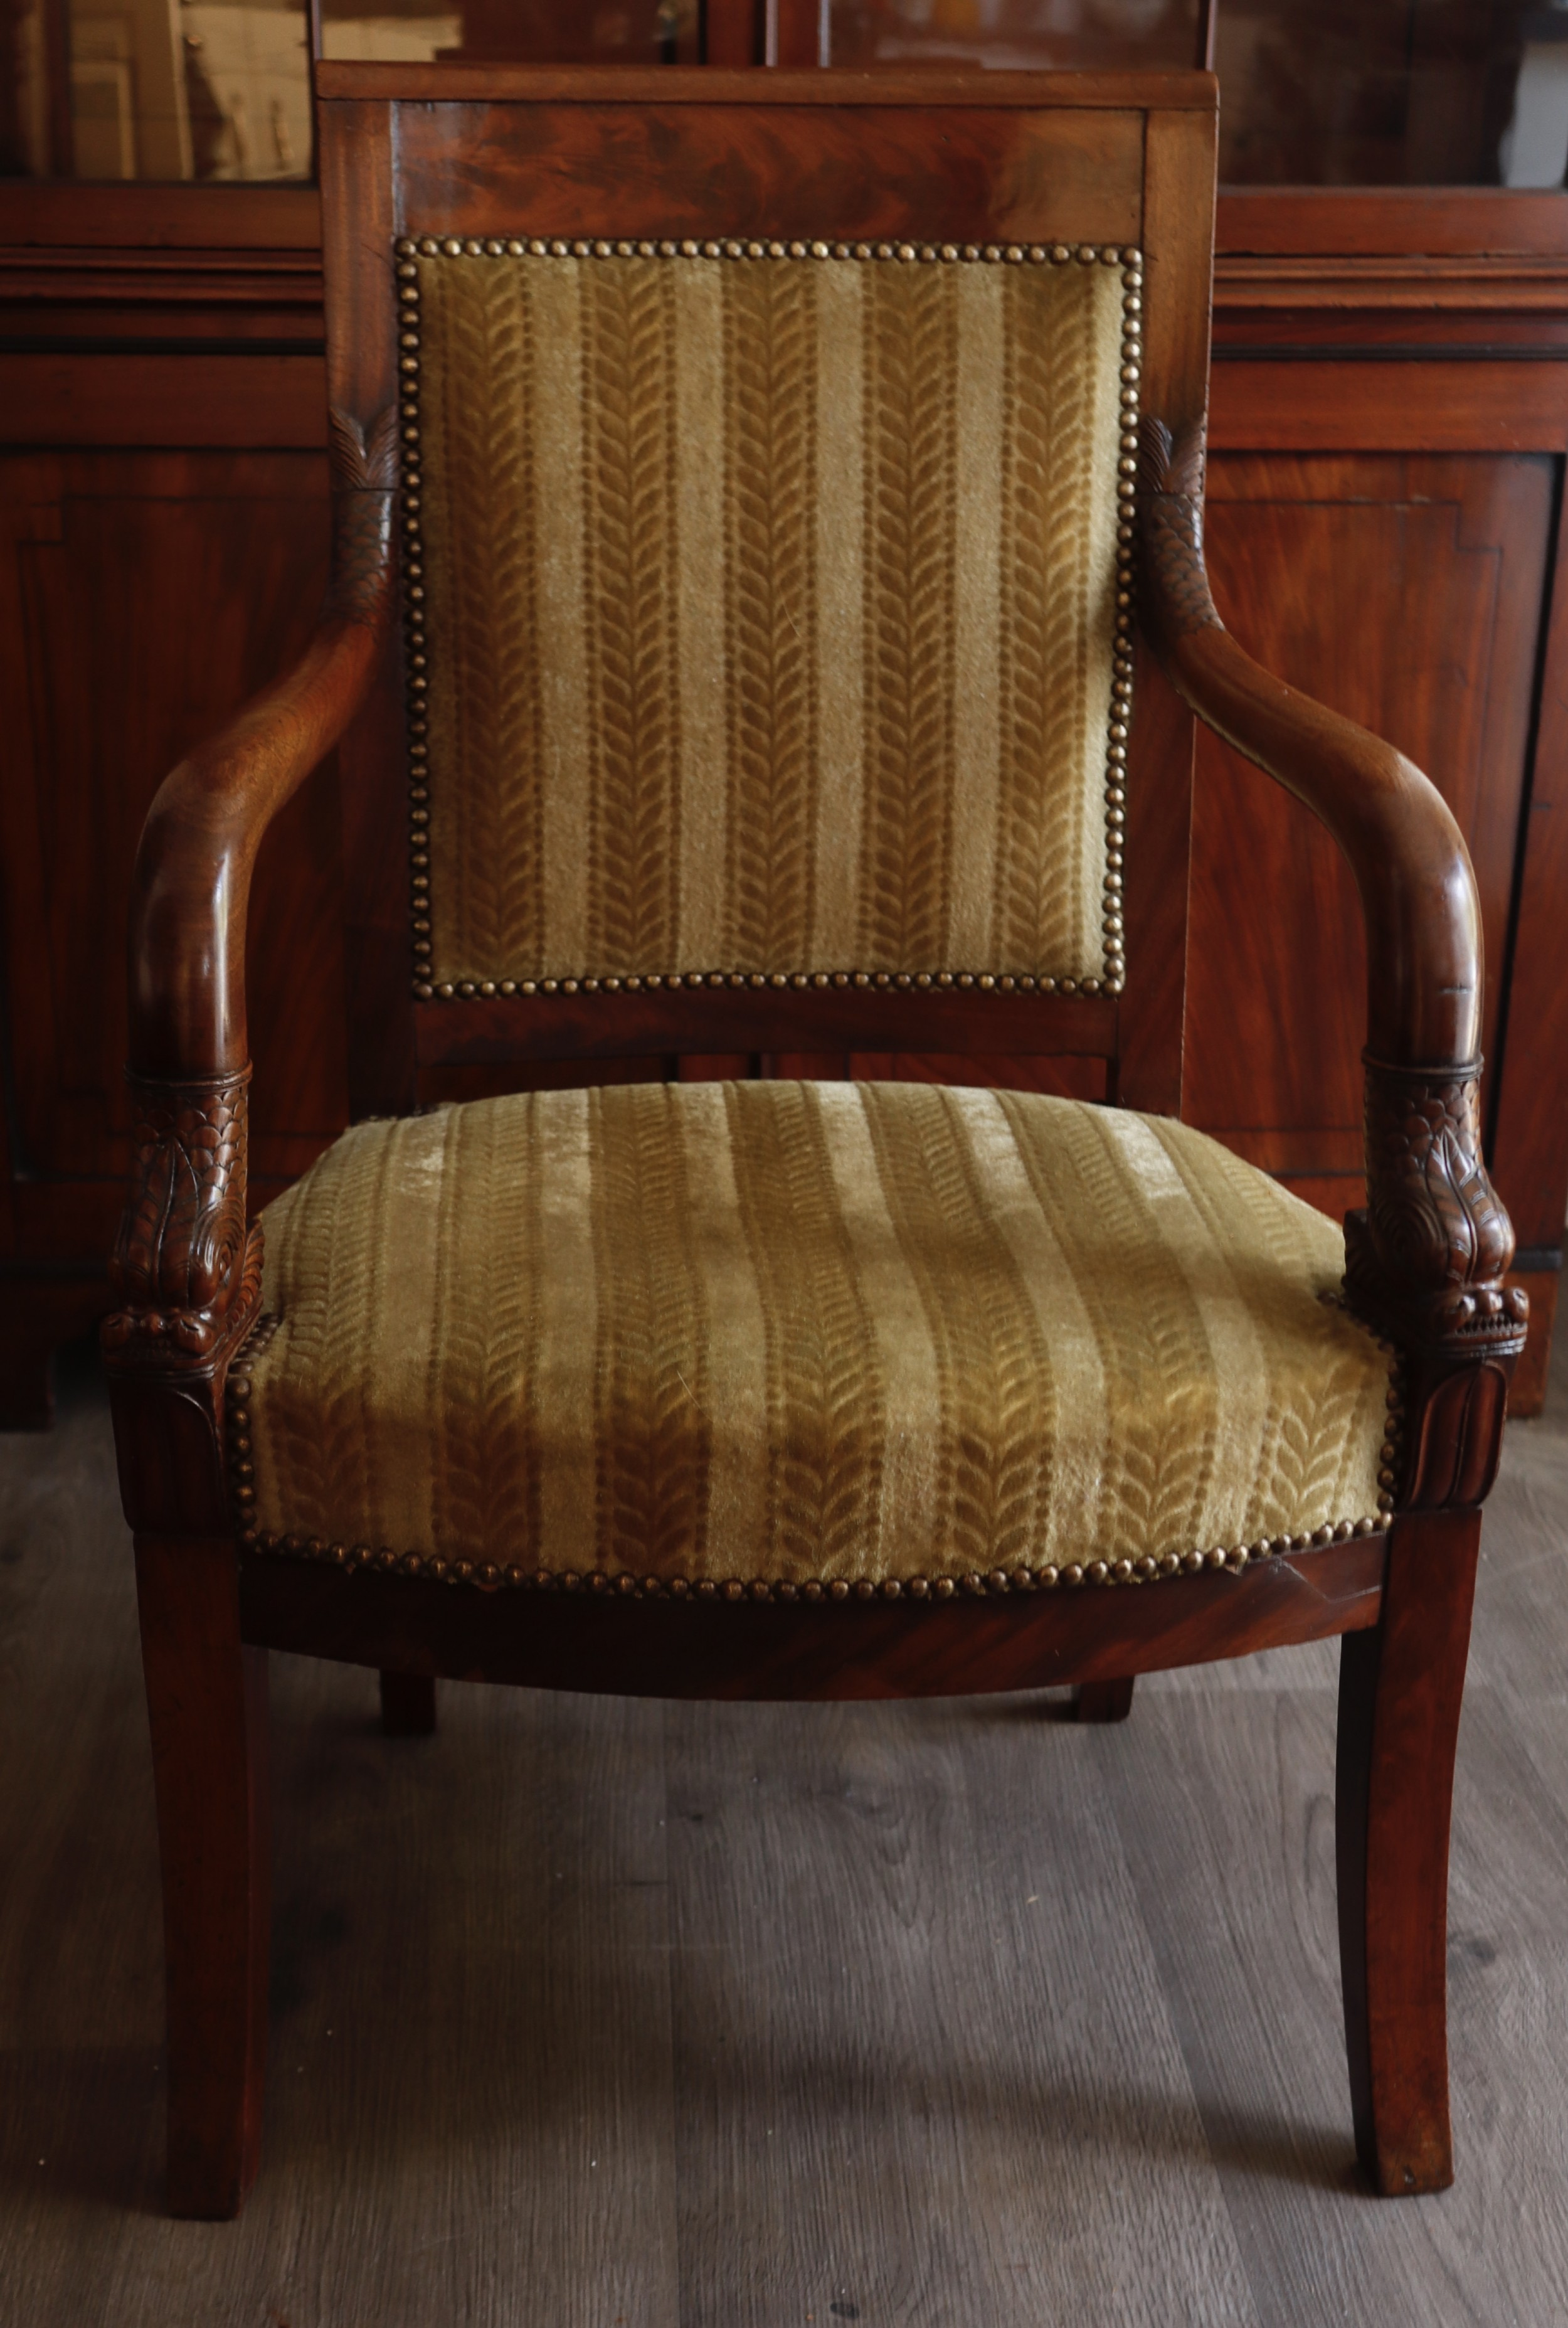 mahogany arm chair with finely carved decoration